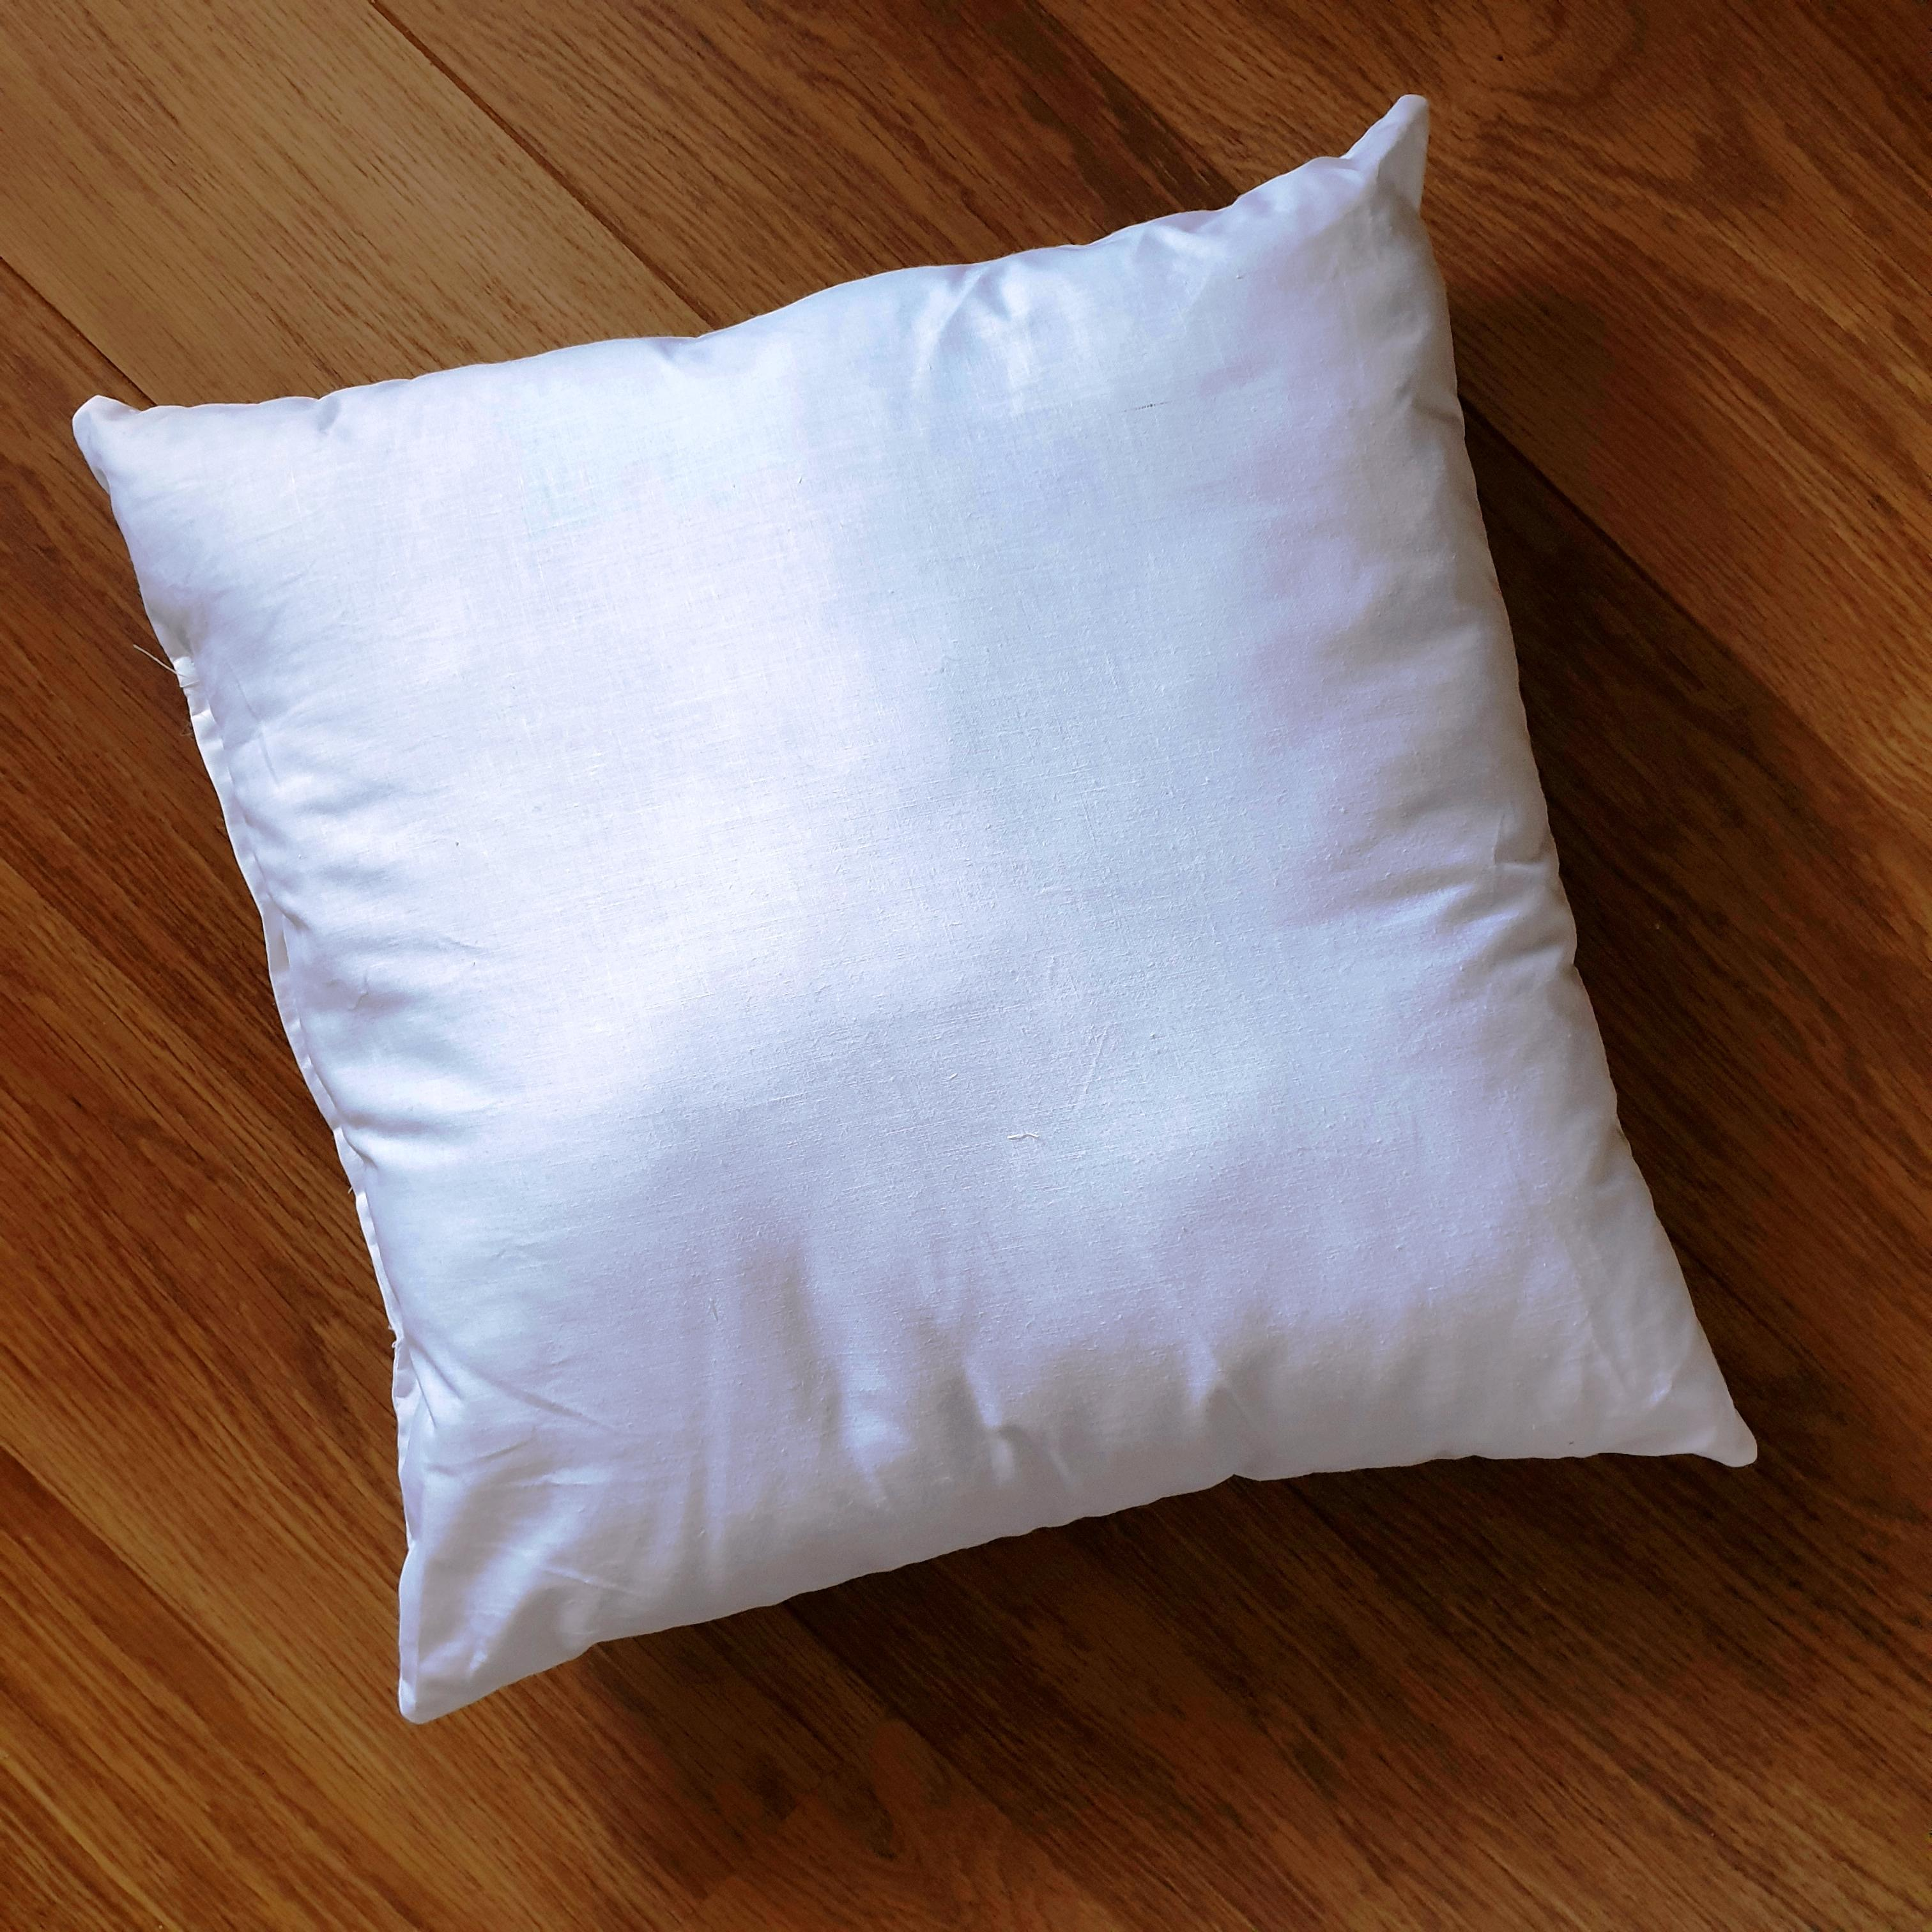 55cm cushion inner pad generously filled with Eco-Hollowfibre made from recycled plastic bottles in white poly cotton outer cover.